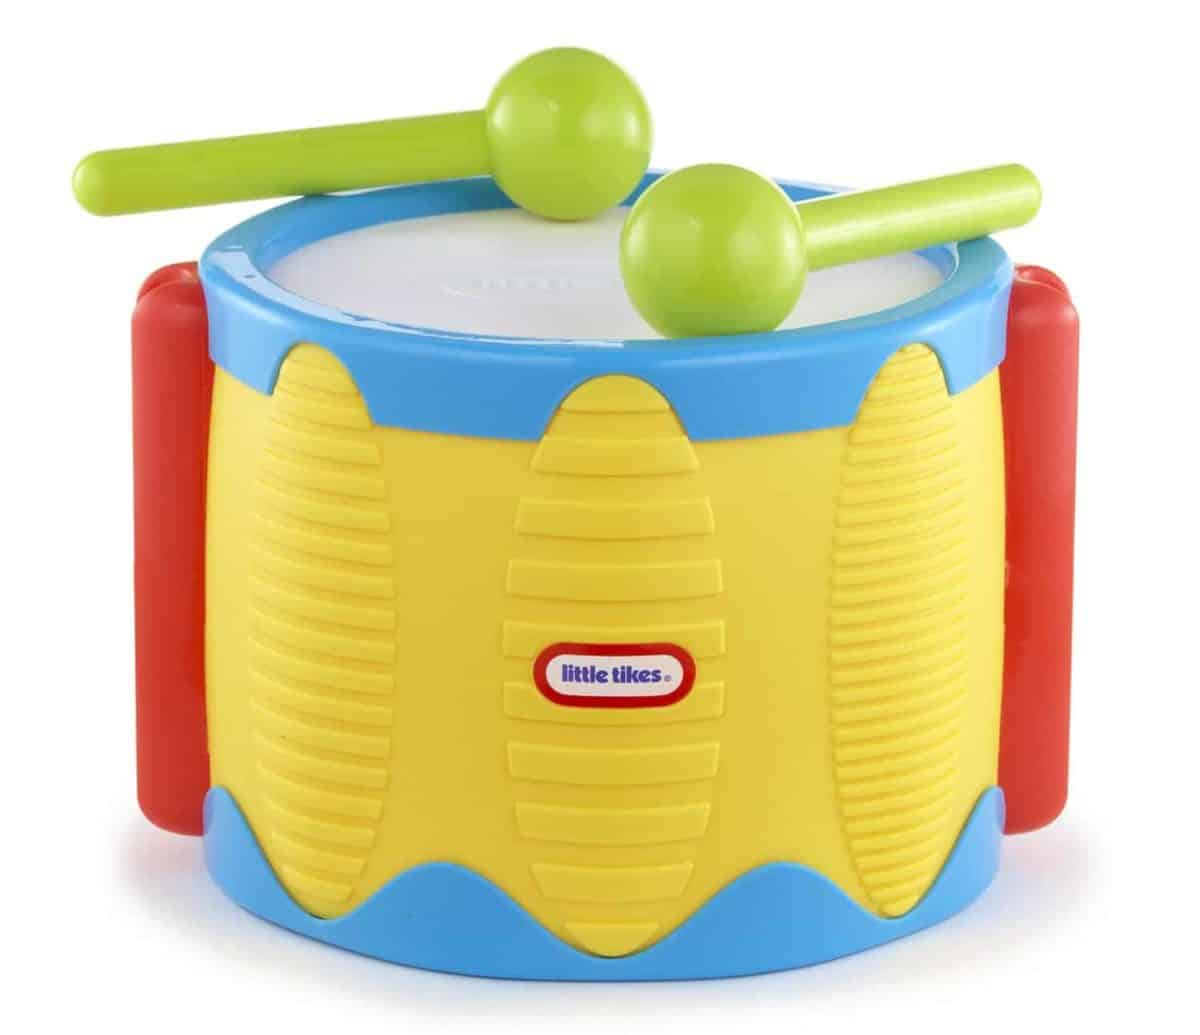 little tikes musical toy for toddler